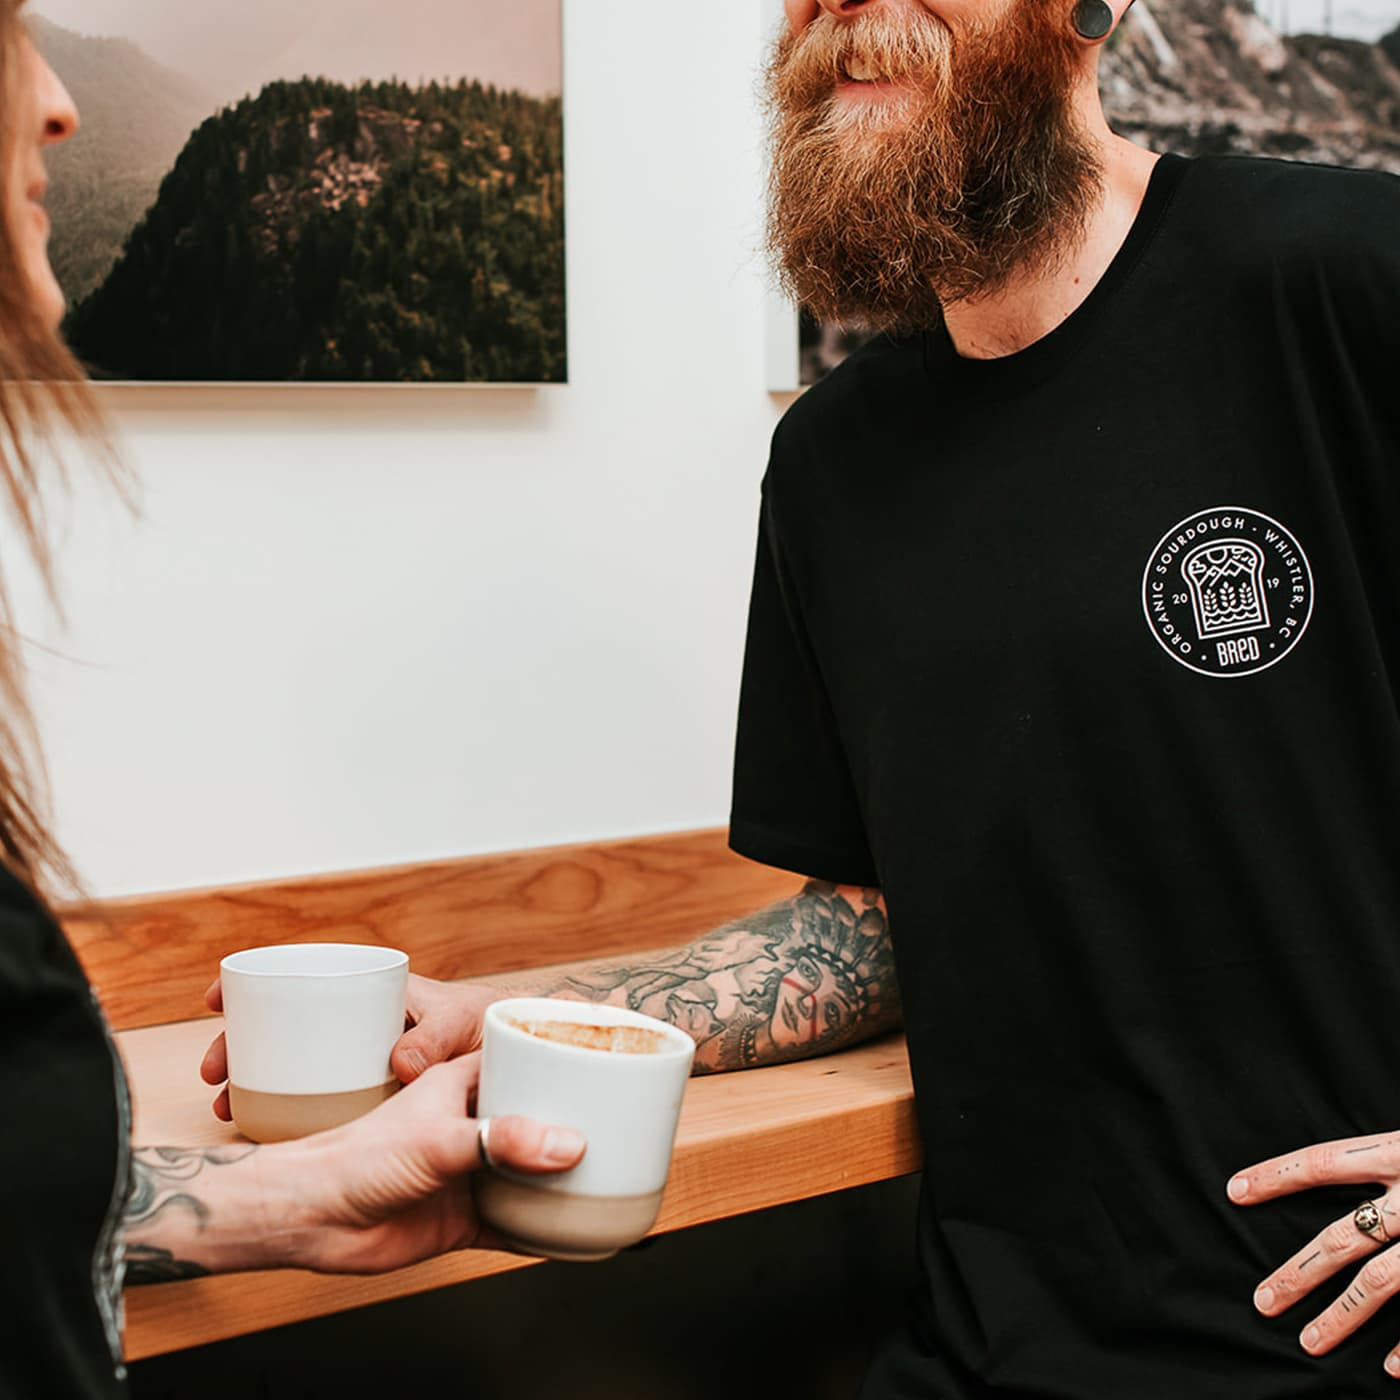 Man and woman leaning on a bench drinking lattes and wearing black t-shirts